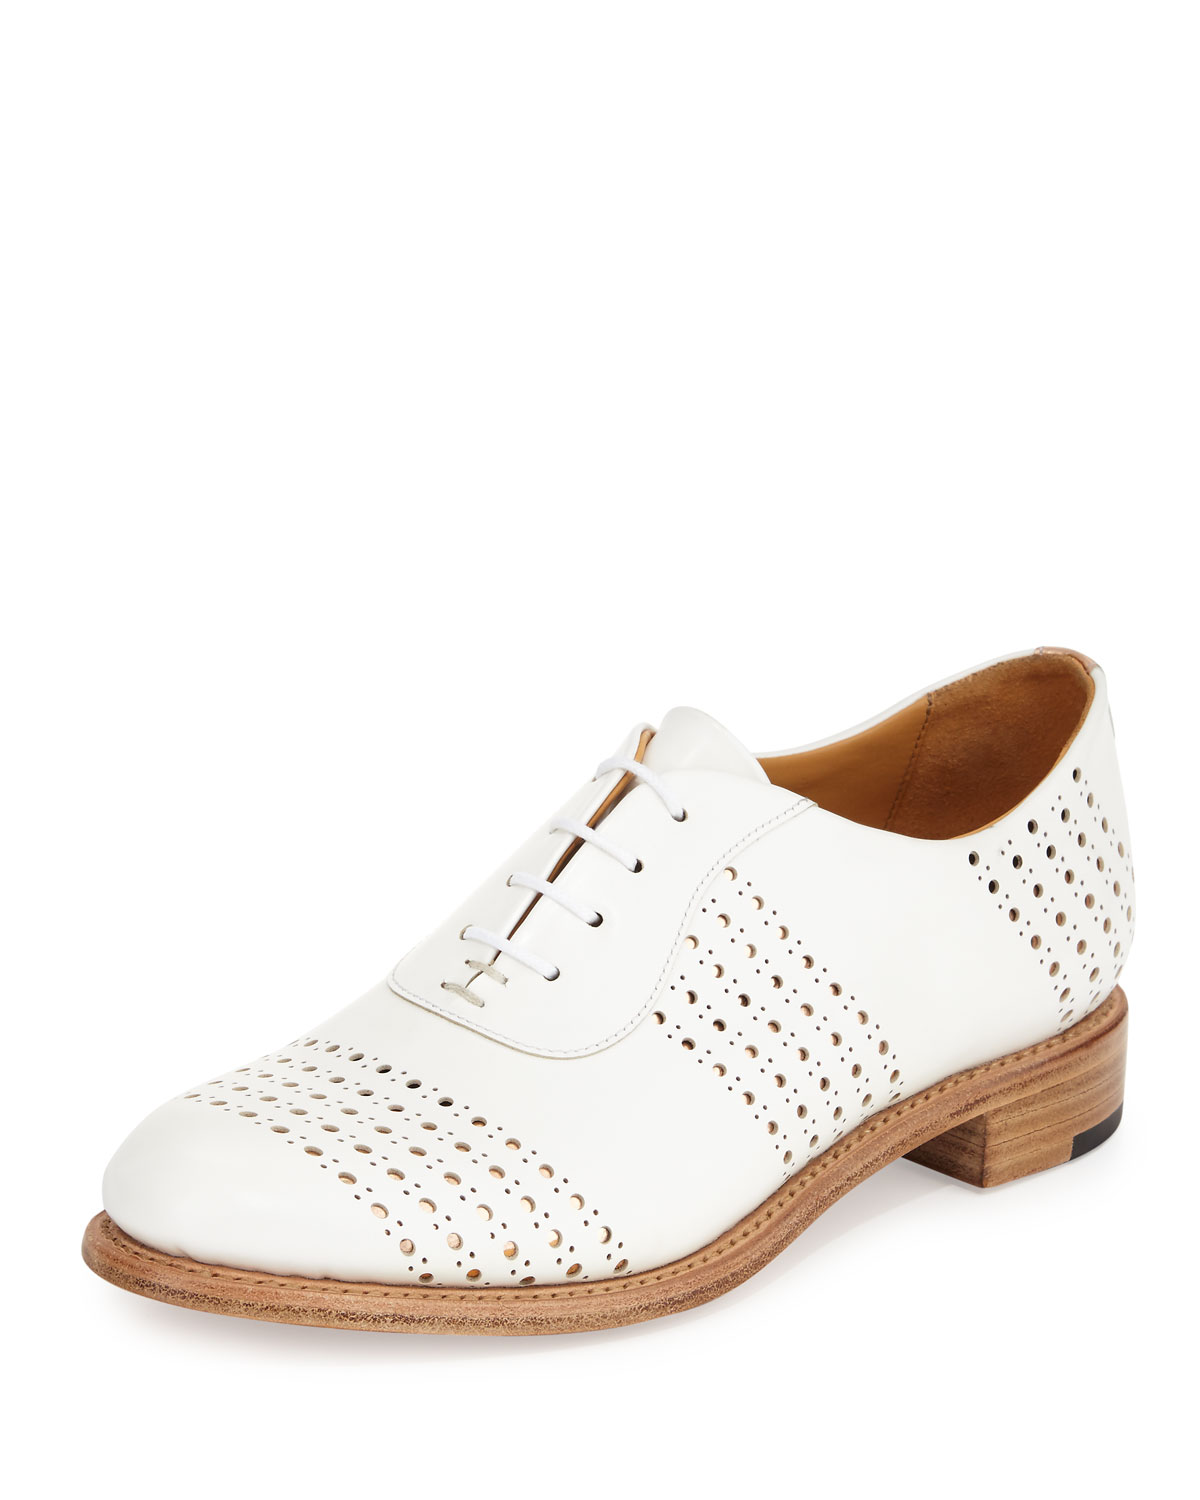 6dae1754842 The Office of Angela Scott Mr. Smith Perforated Leather Oxford ...